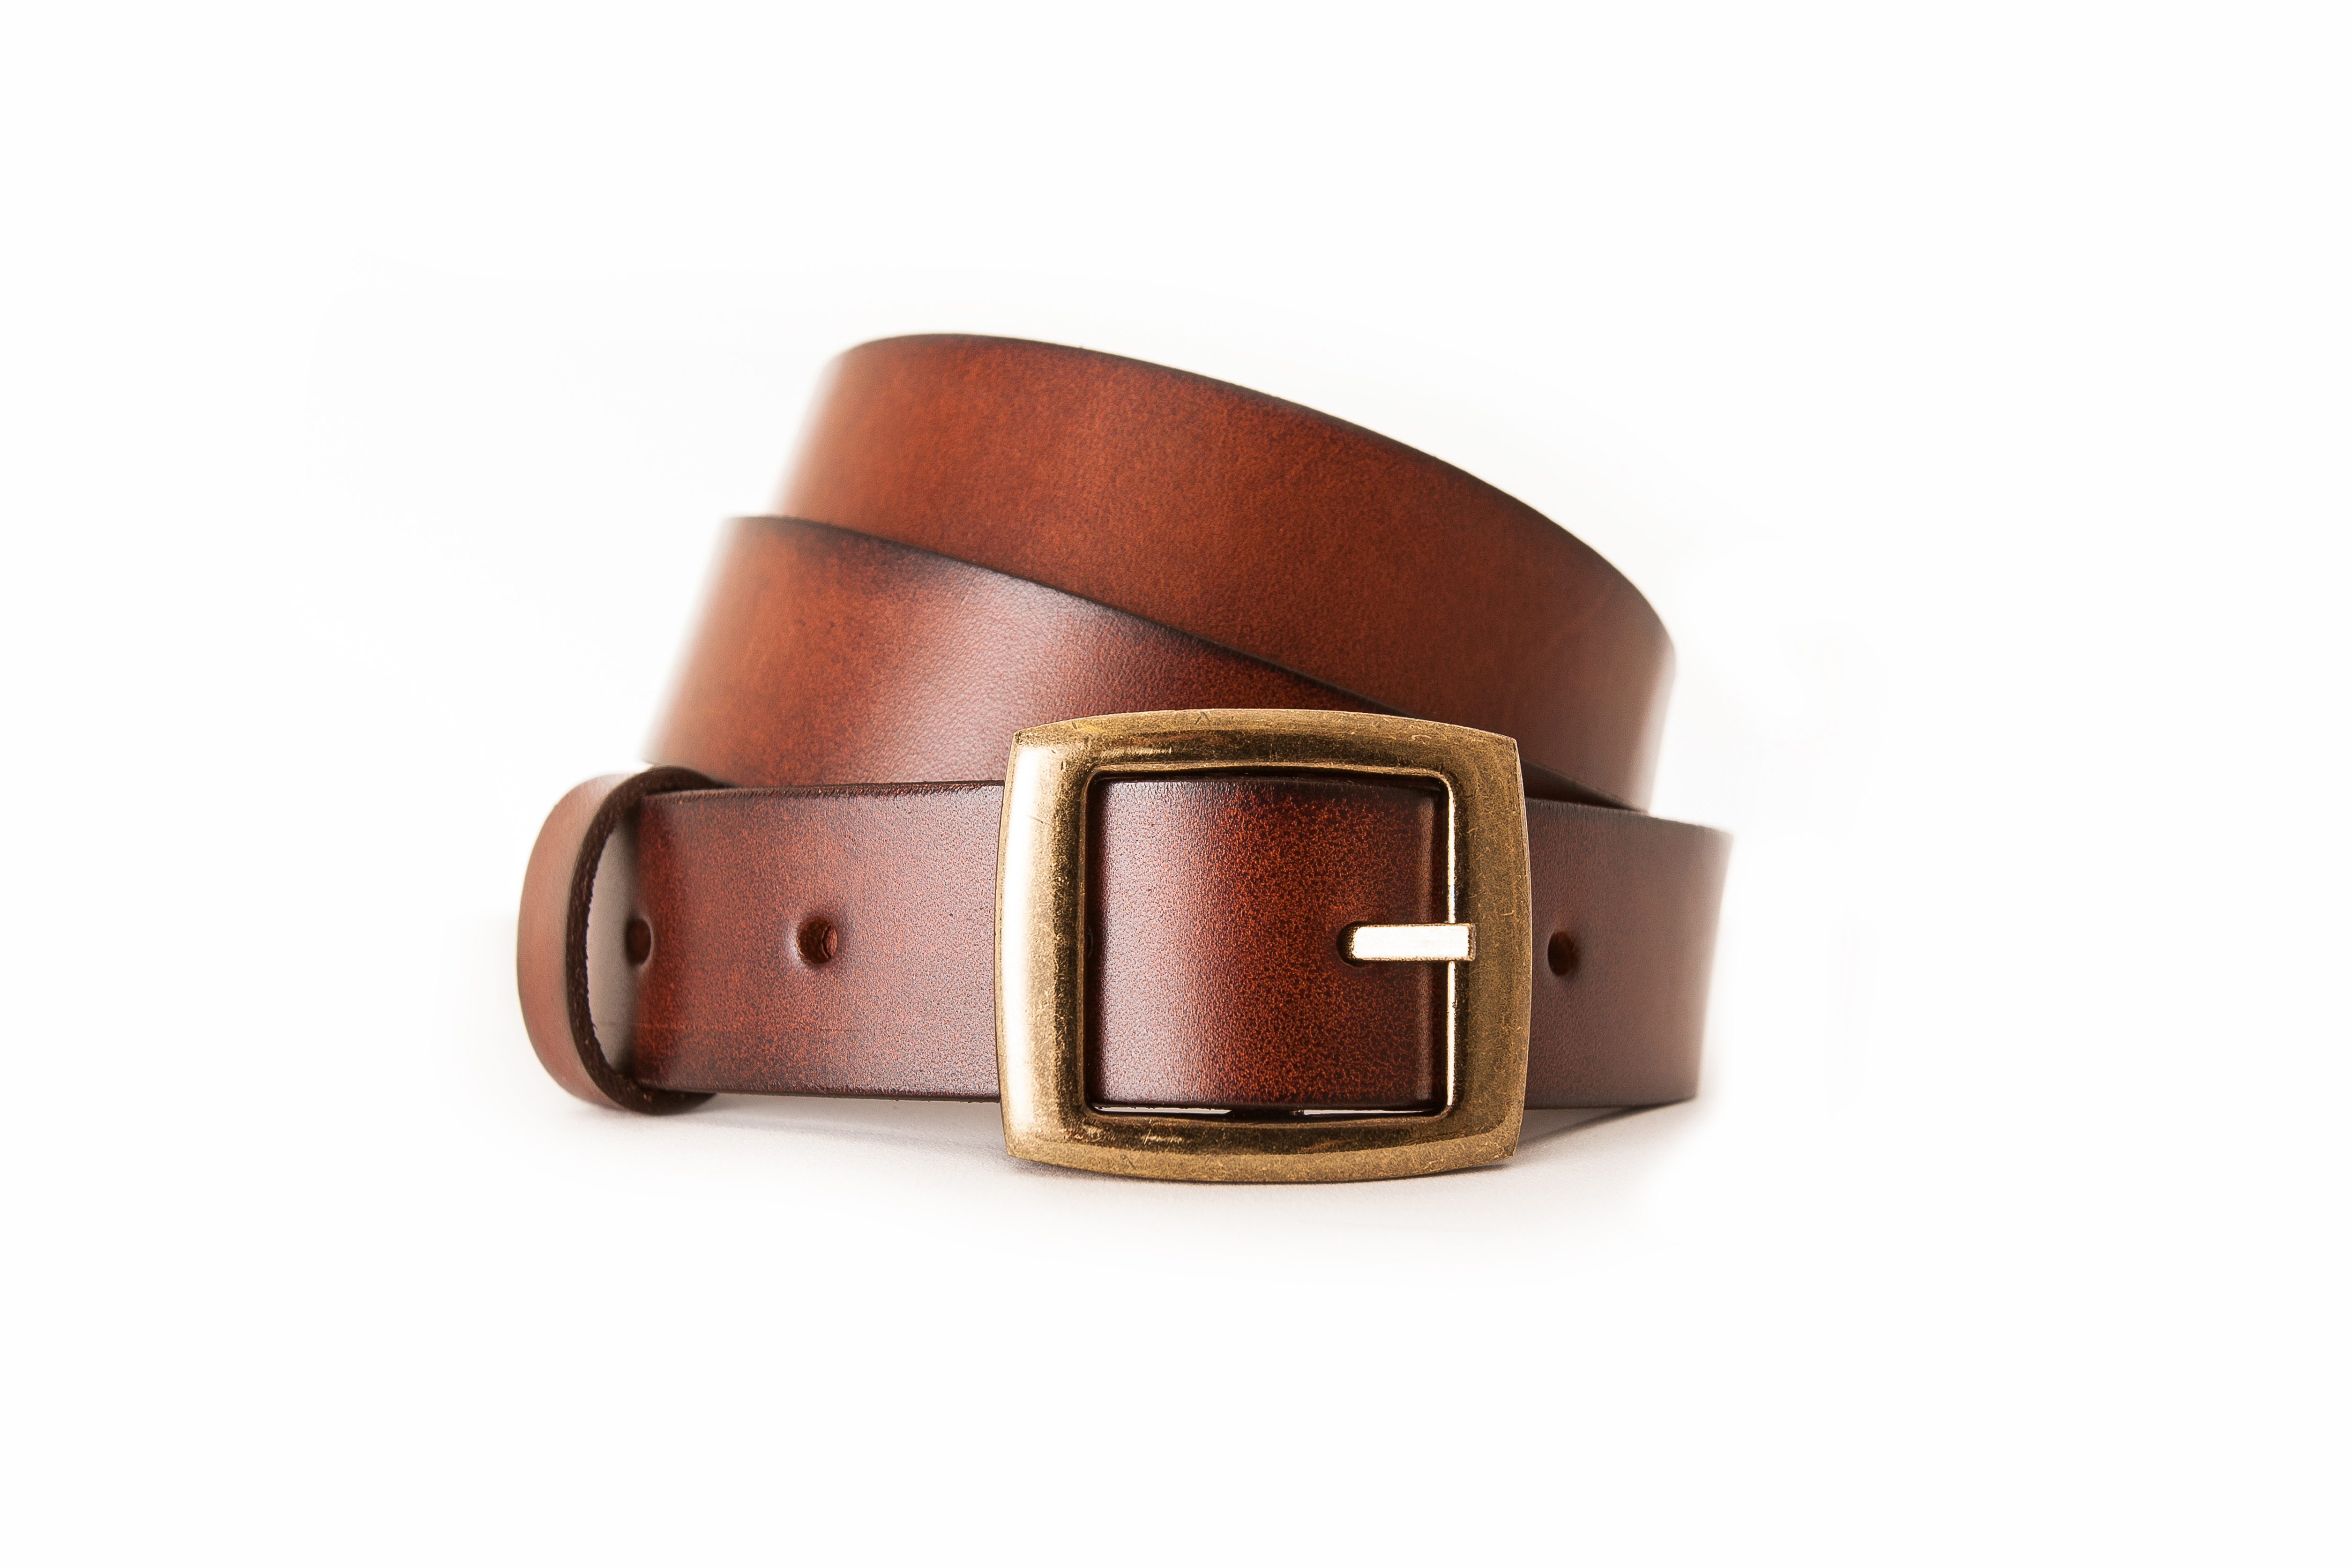 Shop online for Women's Belts at entefile.gq Find leather, suede & chain belts & complete any look. Free Shipping. Free Returns. All the time.